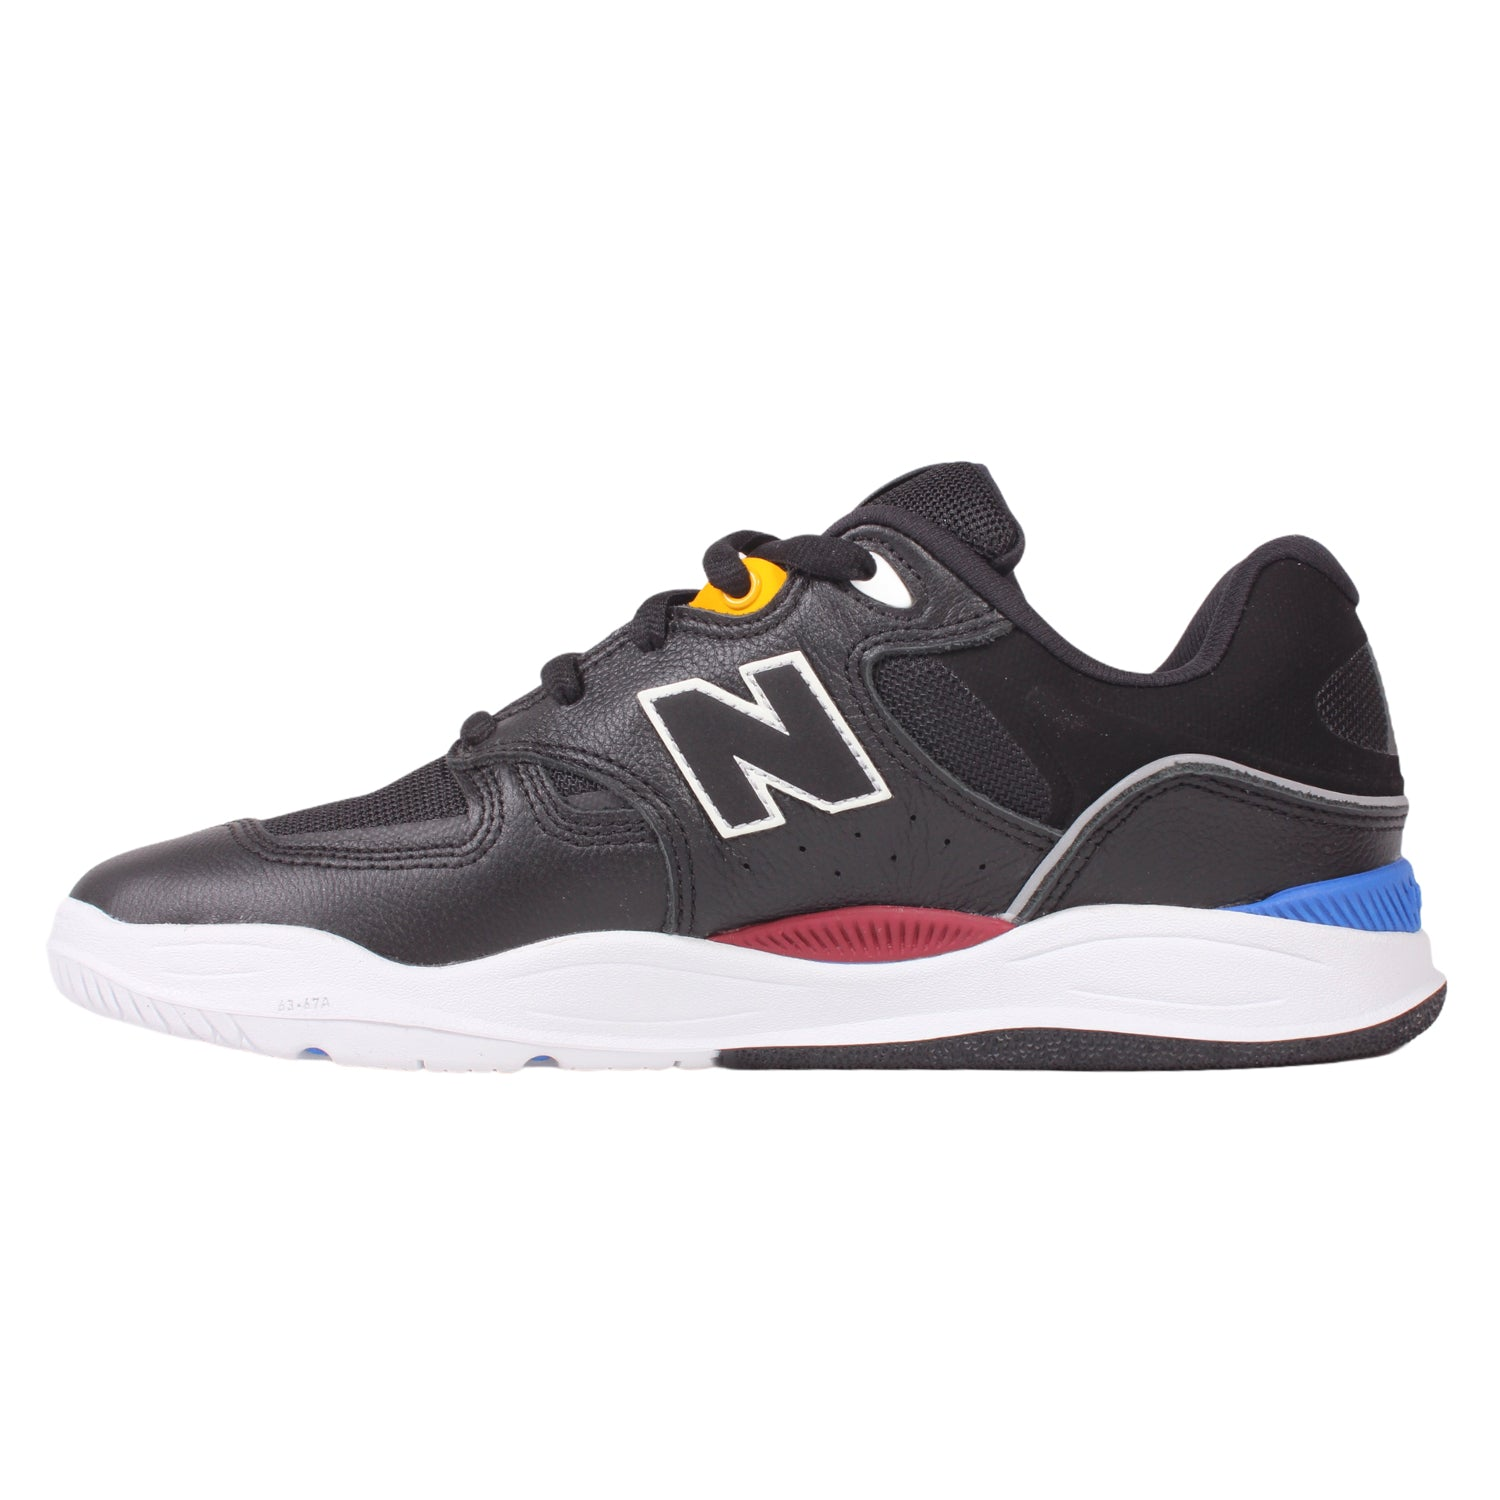 New Balance Numeric Tiago NM1010BG Black/Leather